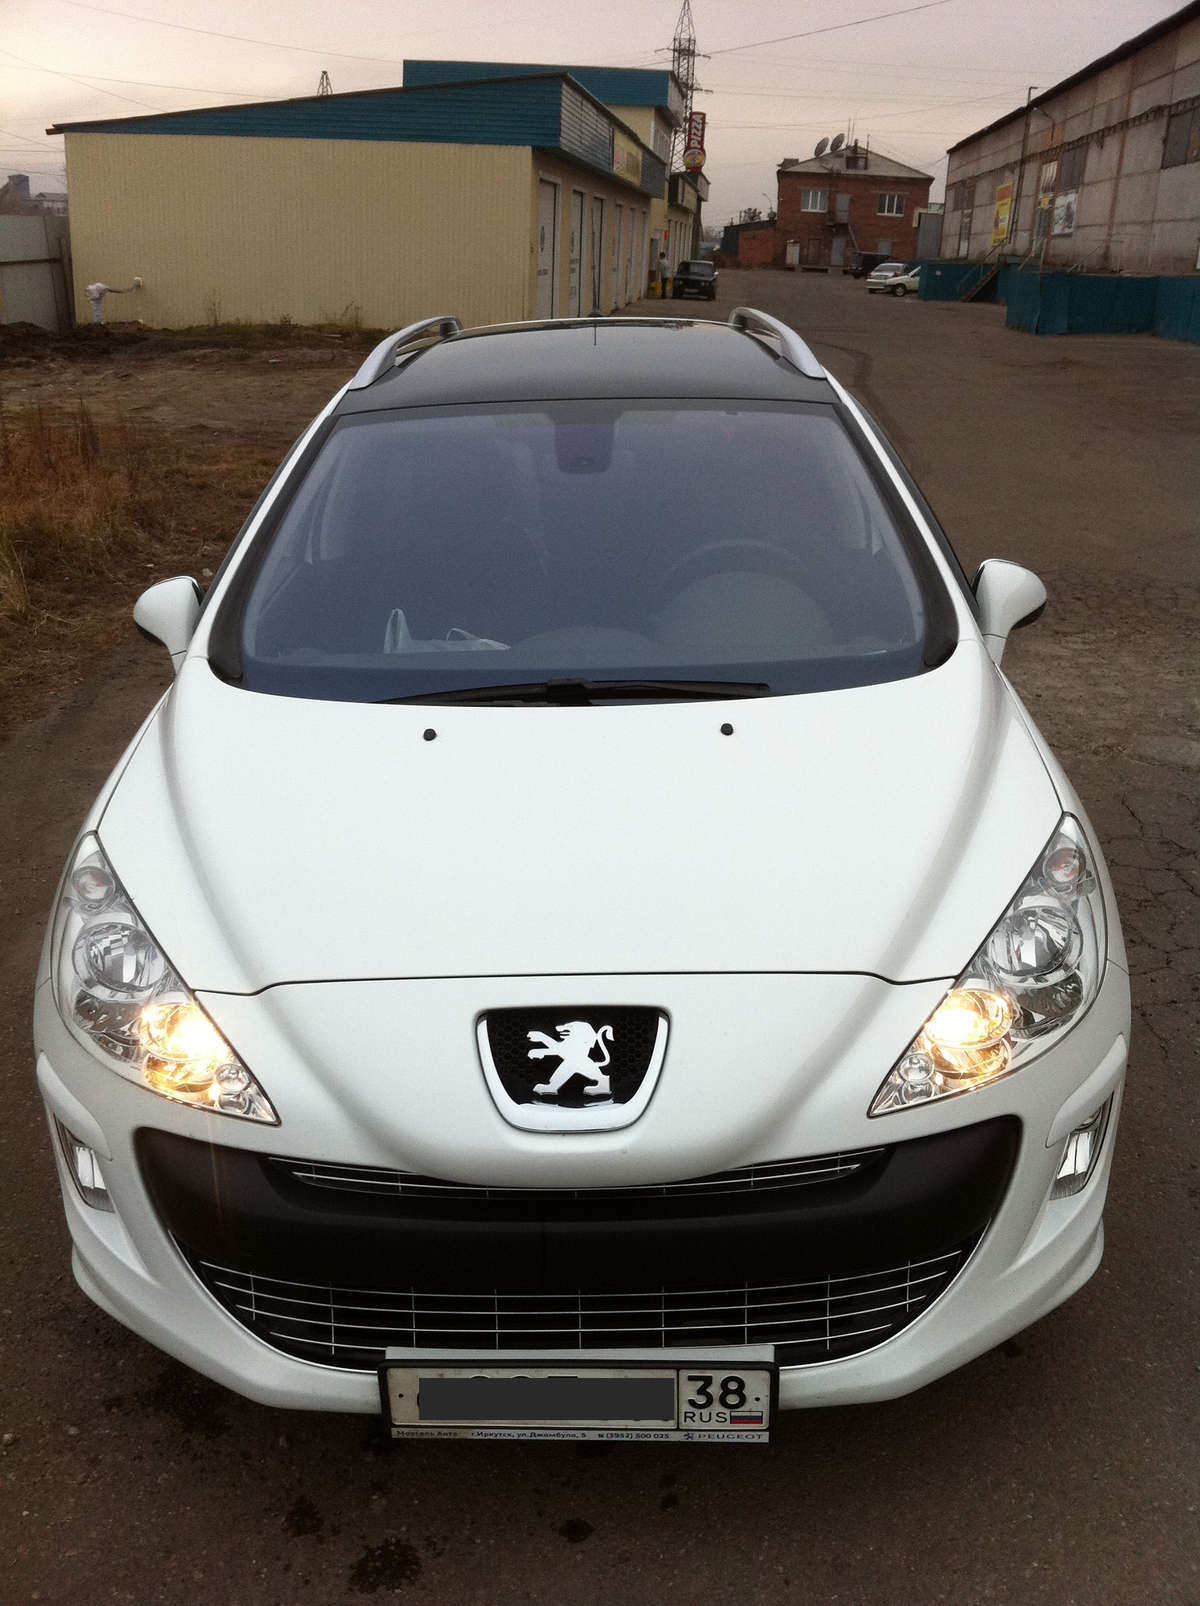 2010 peugeot 308 sw pics 1 6 gasoline ff automatic for sale. Black Bedroom Furniture Sets. Home Design Ideas